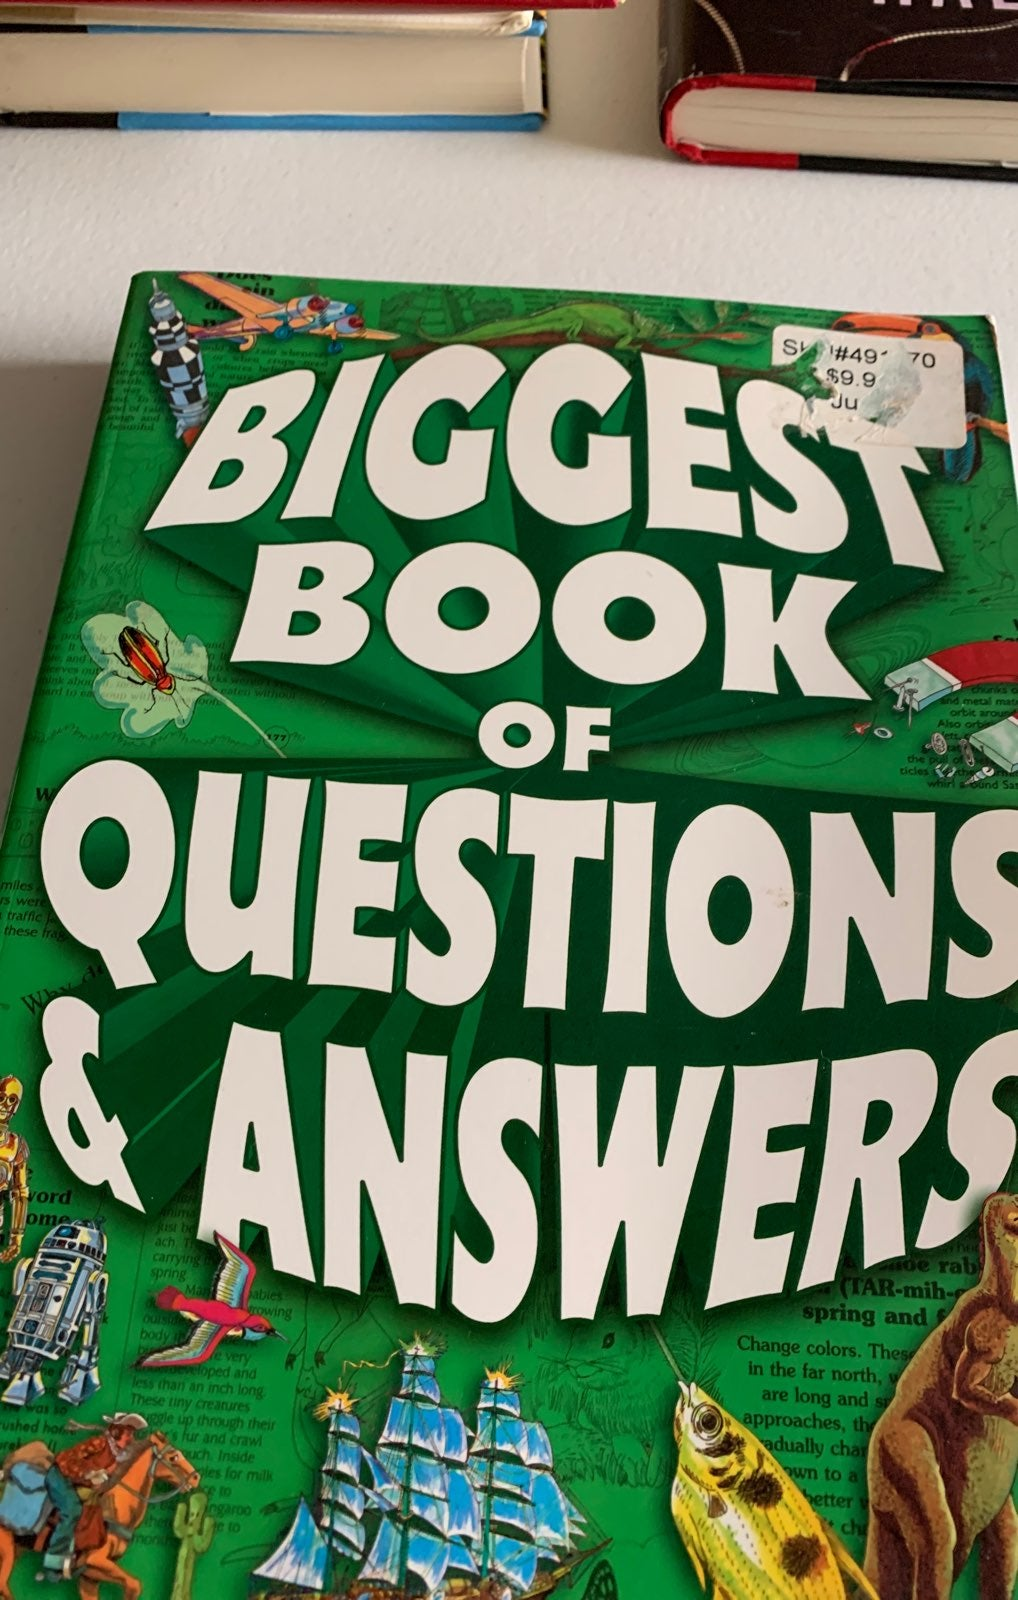 Biggest Book of Questions and Answers bo